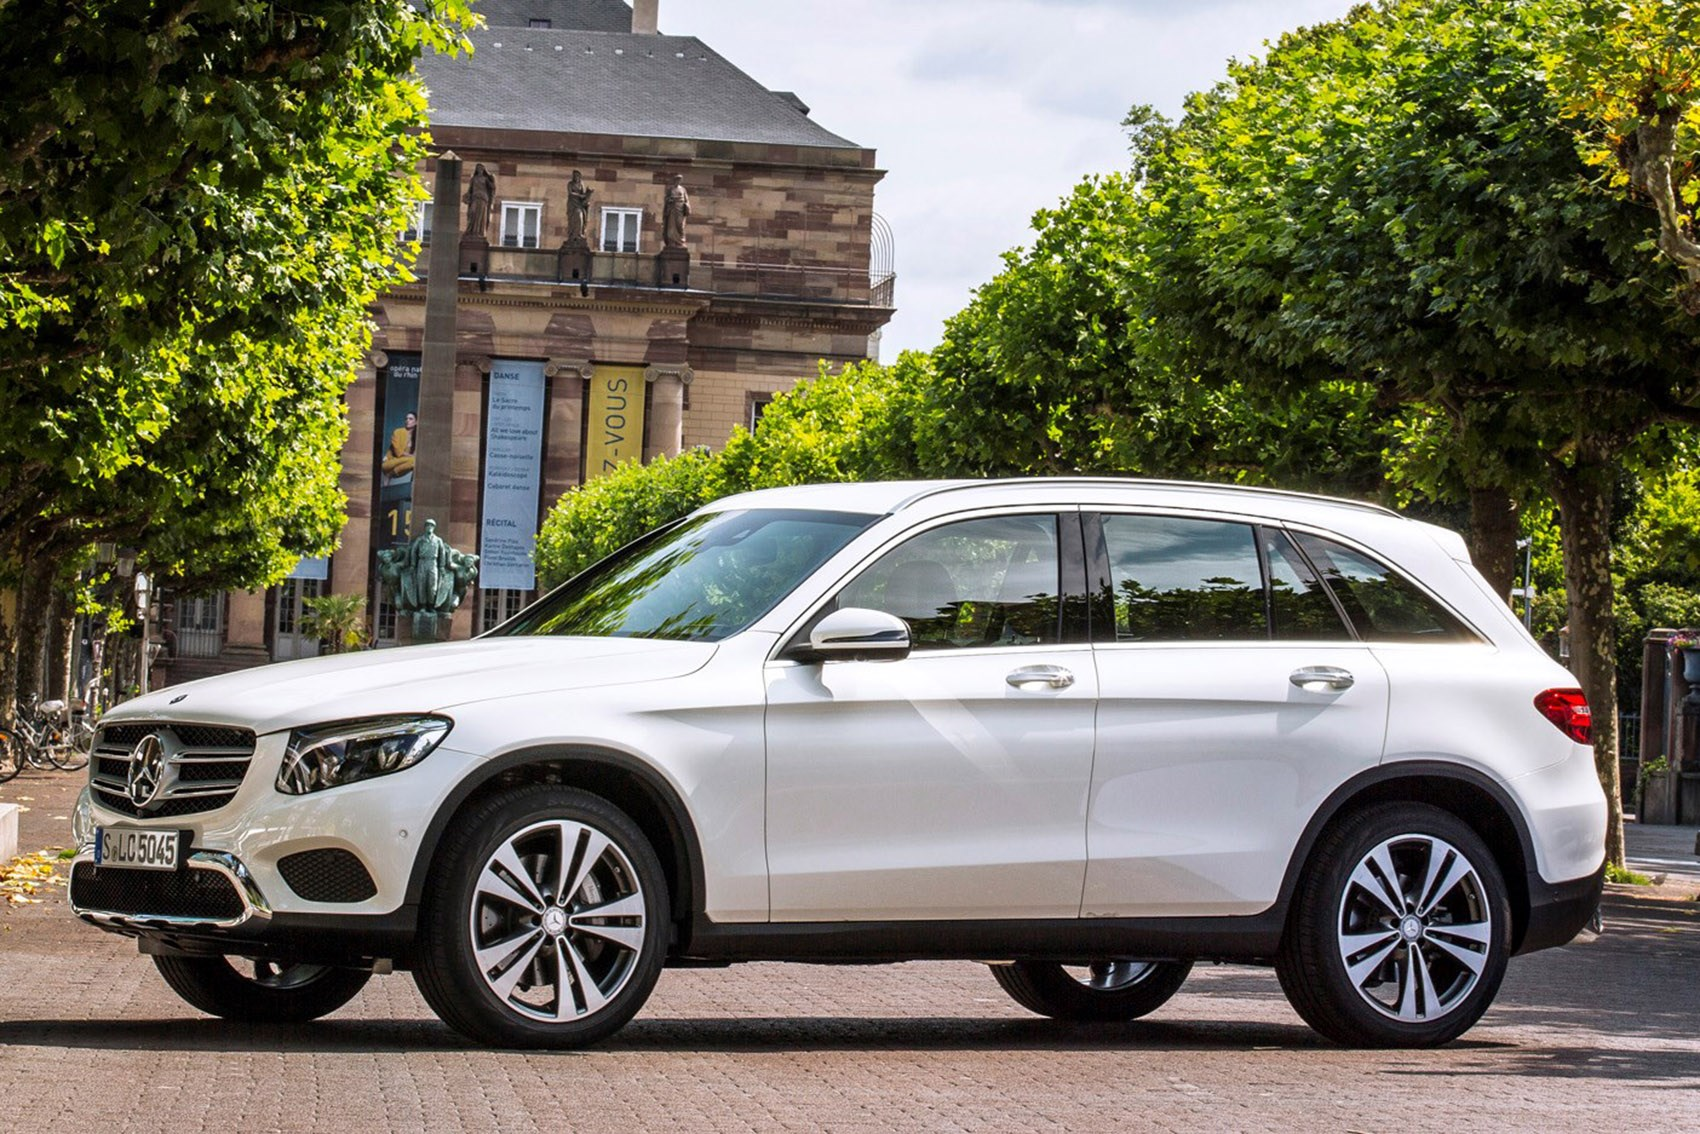 Mercedes-Benz GLC - the best family SUVs